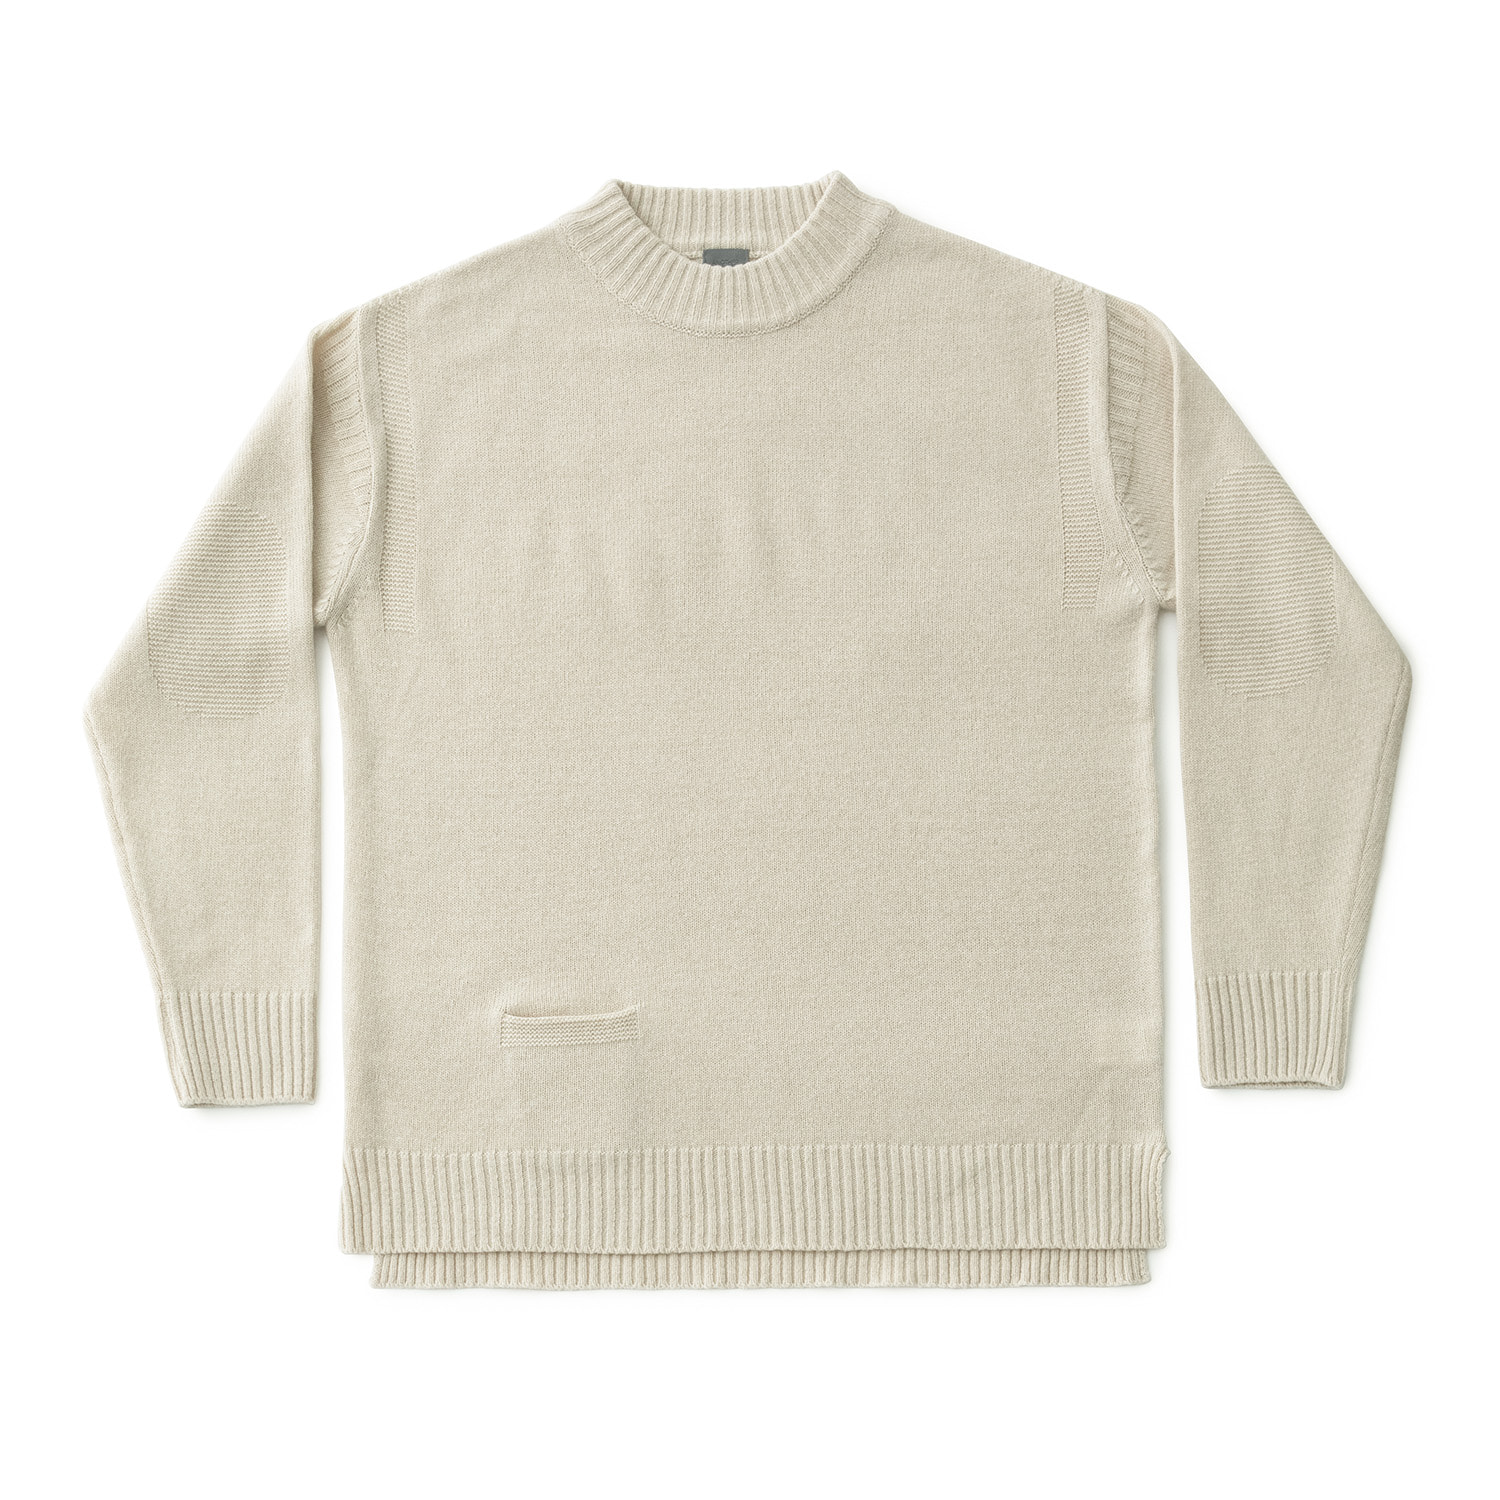 Sailor Guernsey Sweater (Ecru)